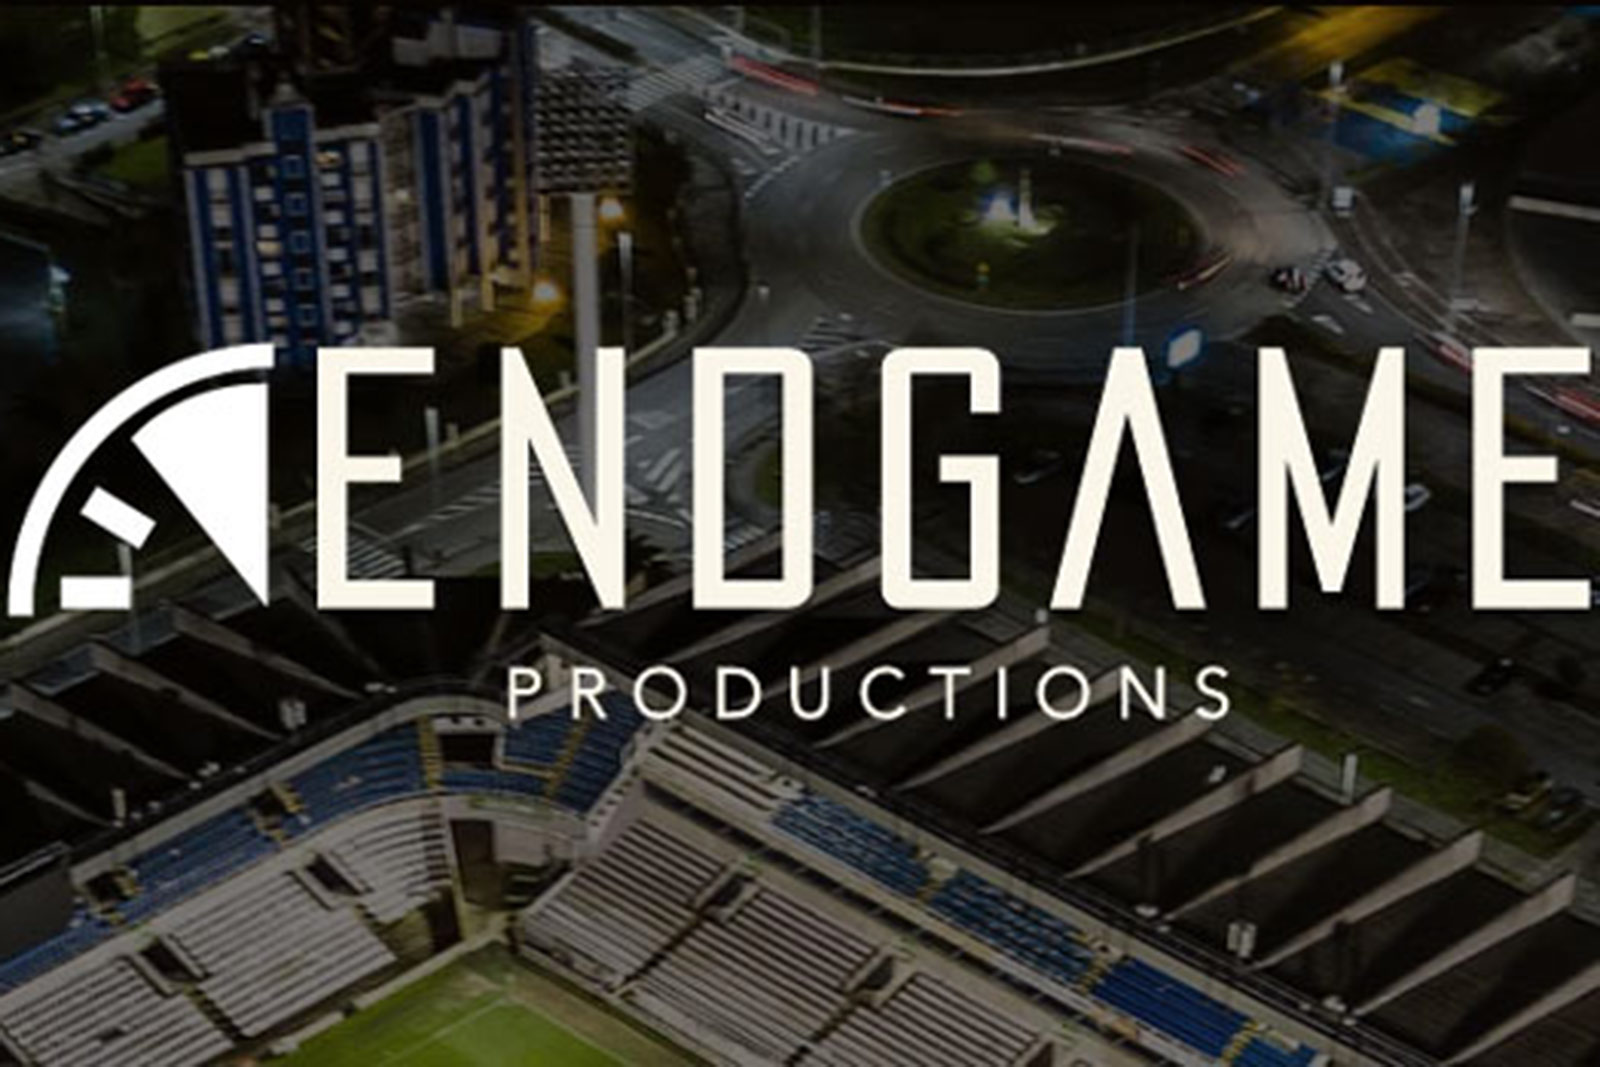 Endgame Productions